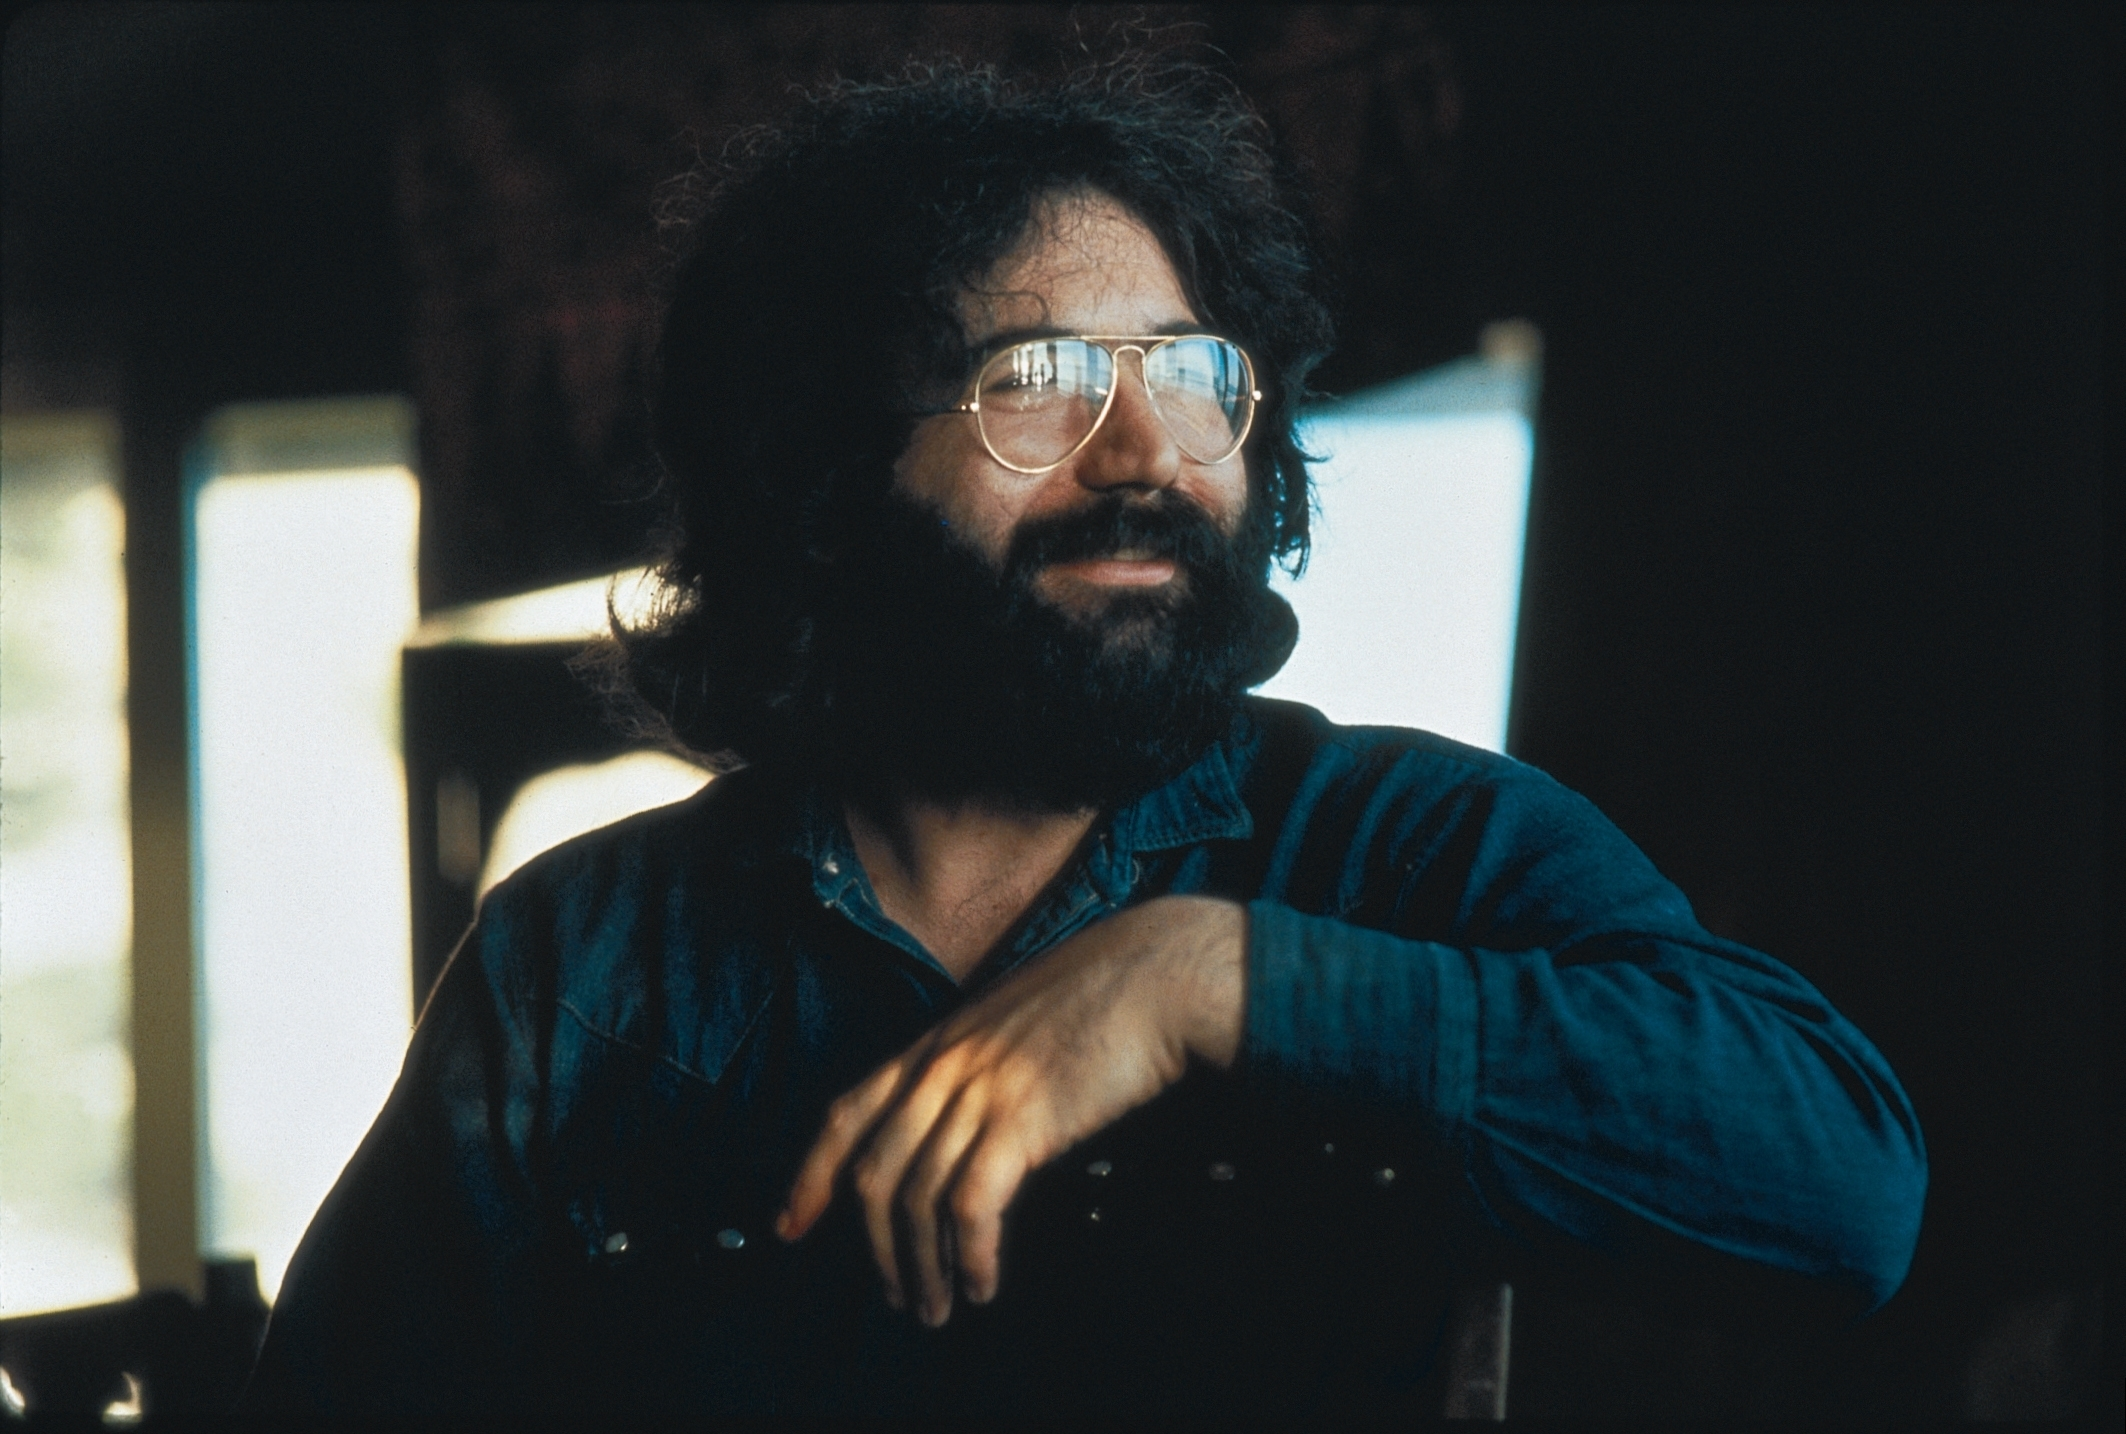 beard musicians men with glasses the grateful dead jerry garcia